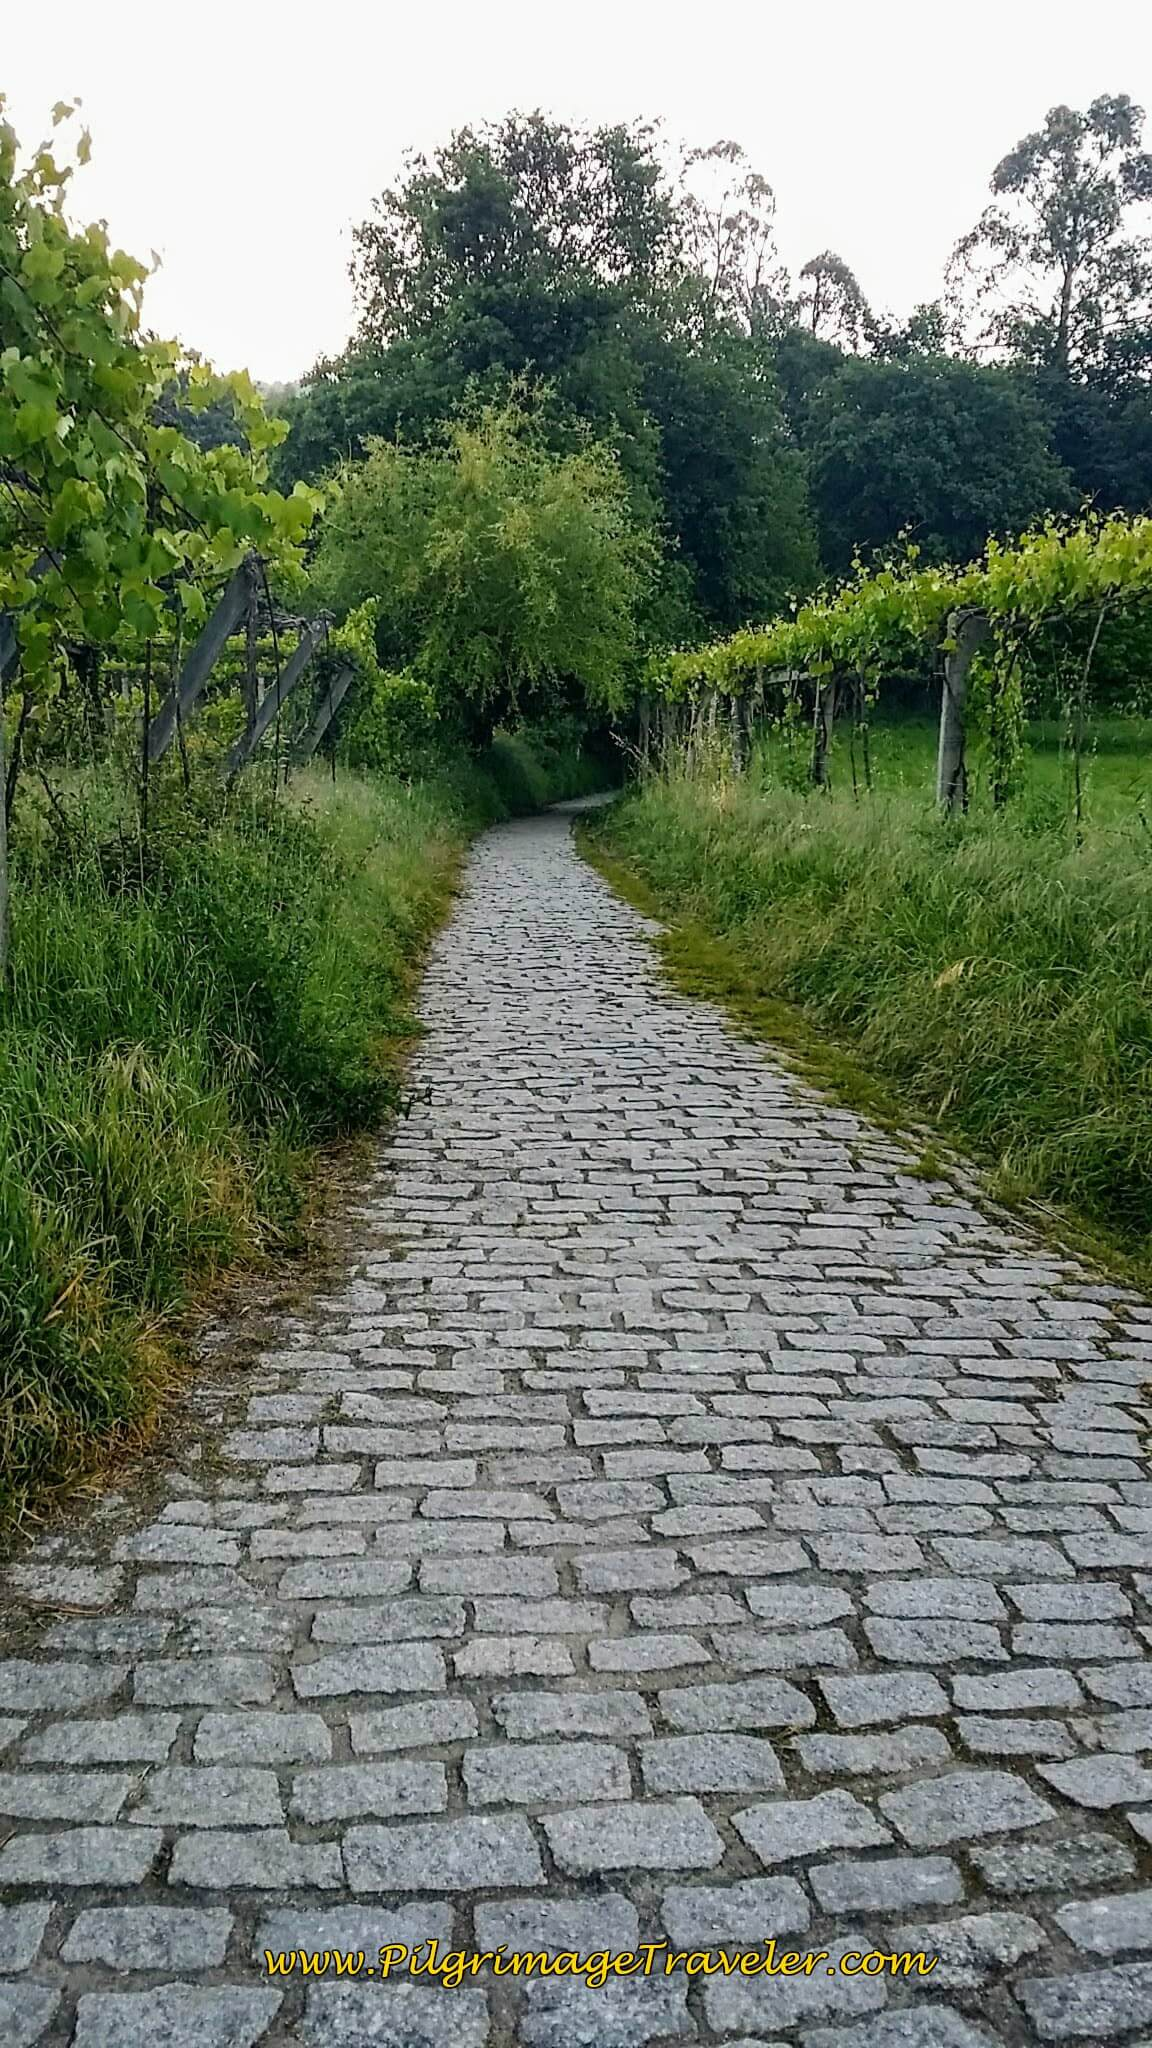 Cobblestone Path Look-Back, Coming Out of Forest on Day Twenty-Four, Portuguese Way